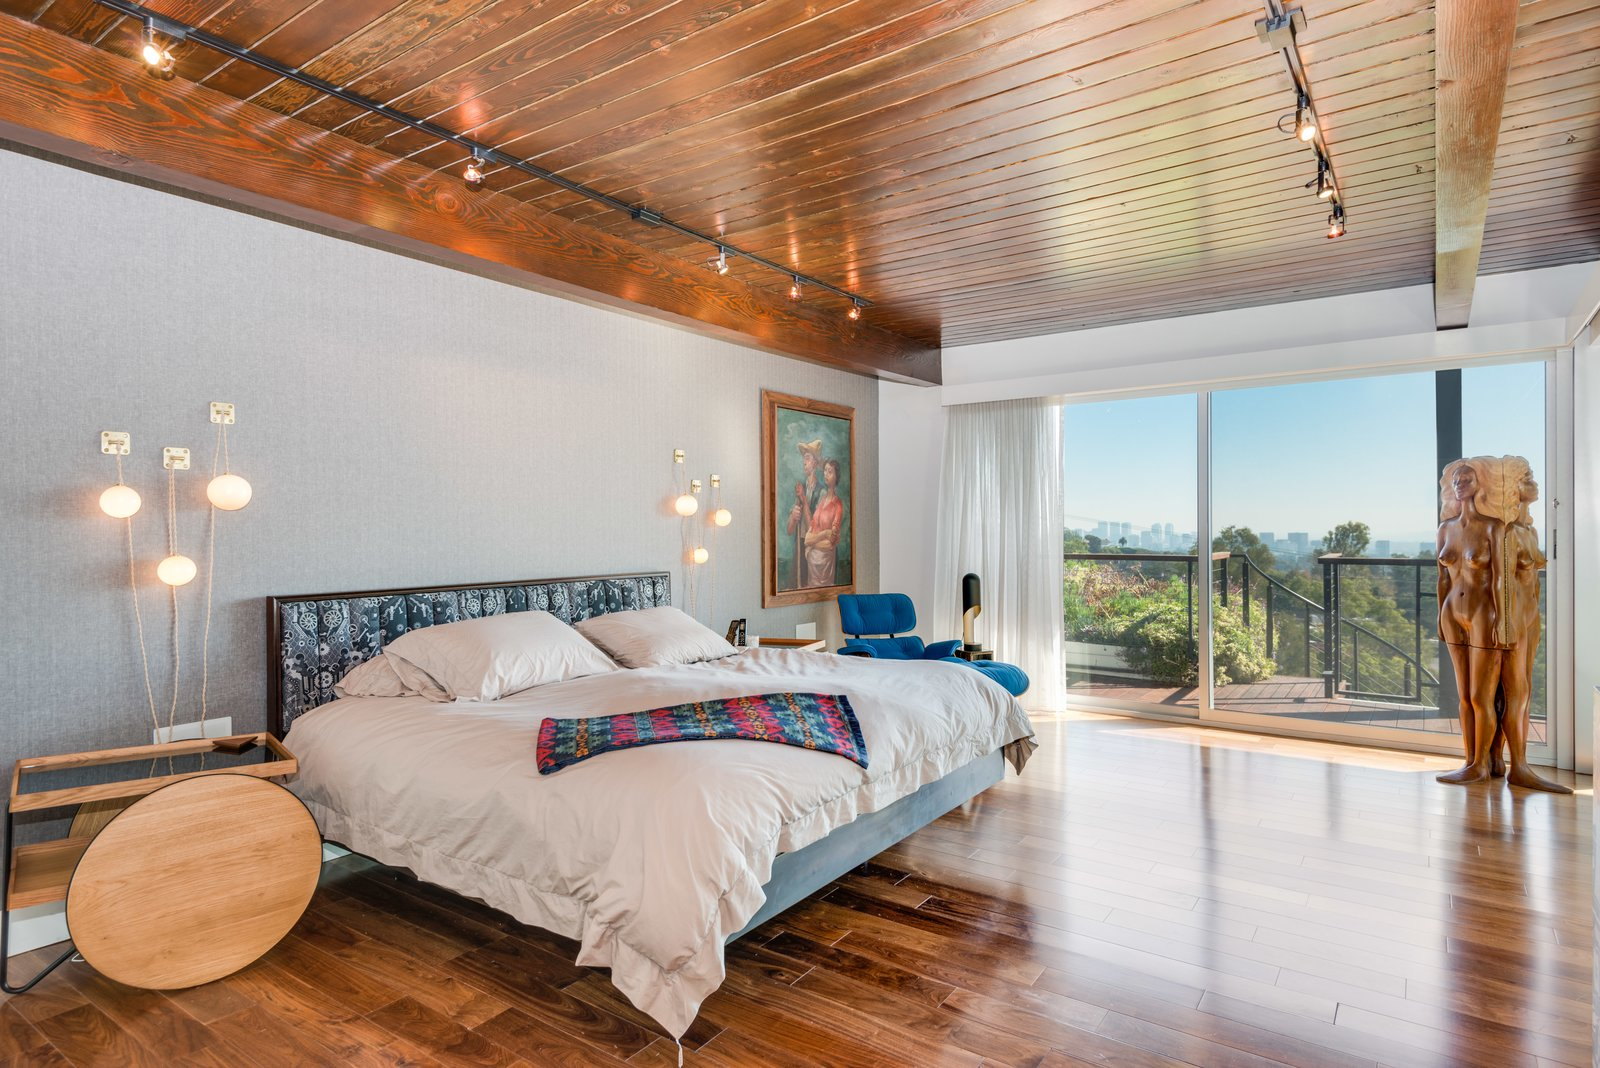 Bedroom, Medium Hardwood Floor, Bed, Night Stands, Wall Lighting, Track Lighting, and Chair The master bedroom opens to the terrace and a stunning view.  Photos from A Renovated Harry Gesner–Designed Midcentury in L.A. Wants $9.4M